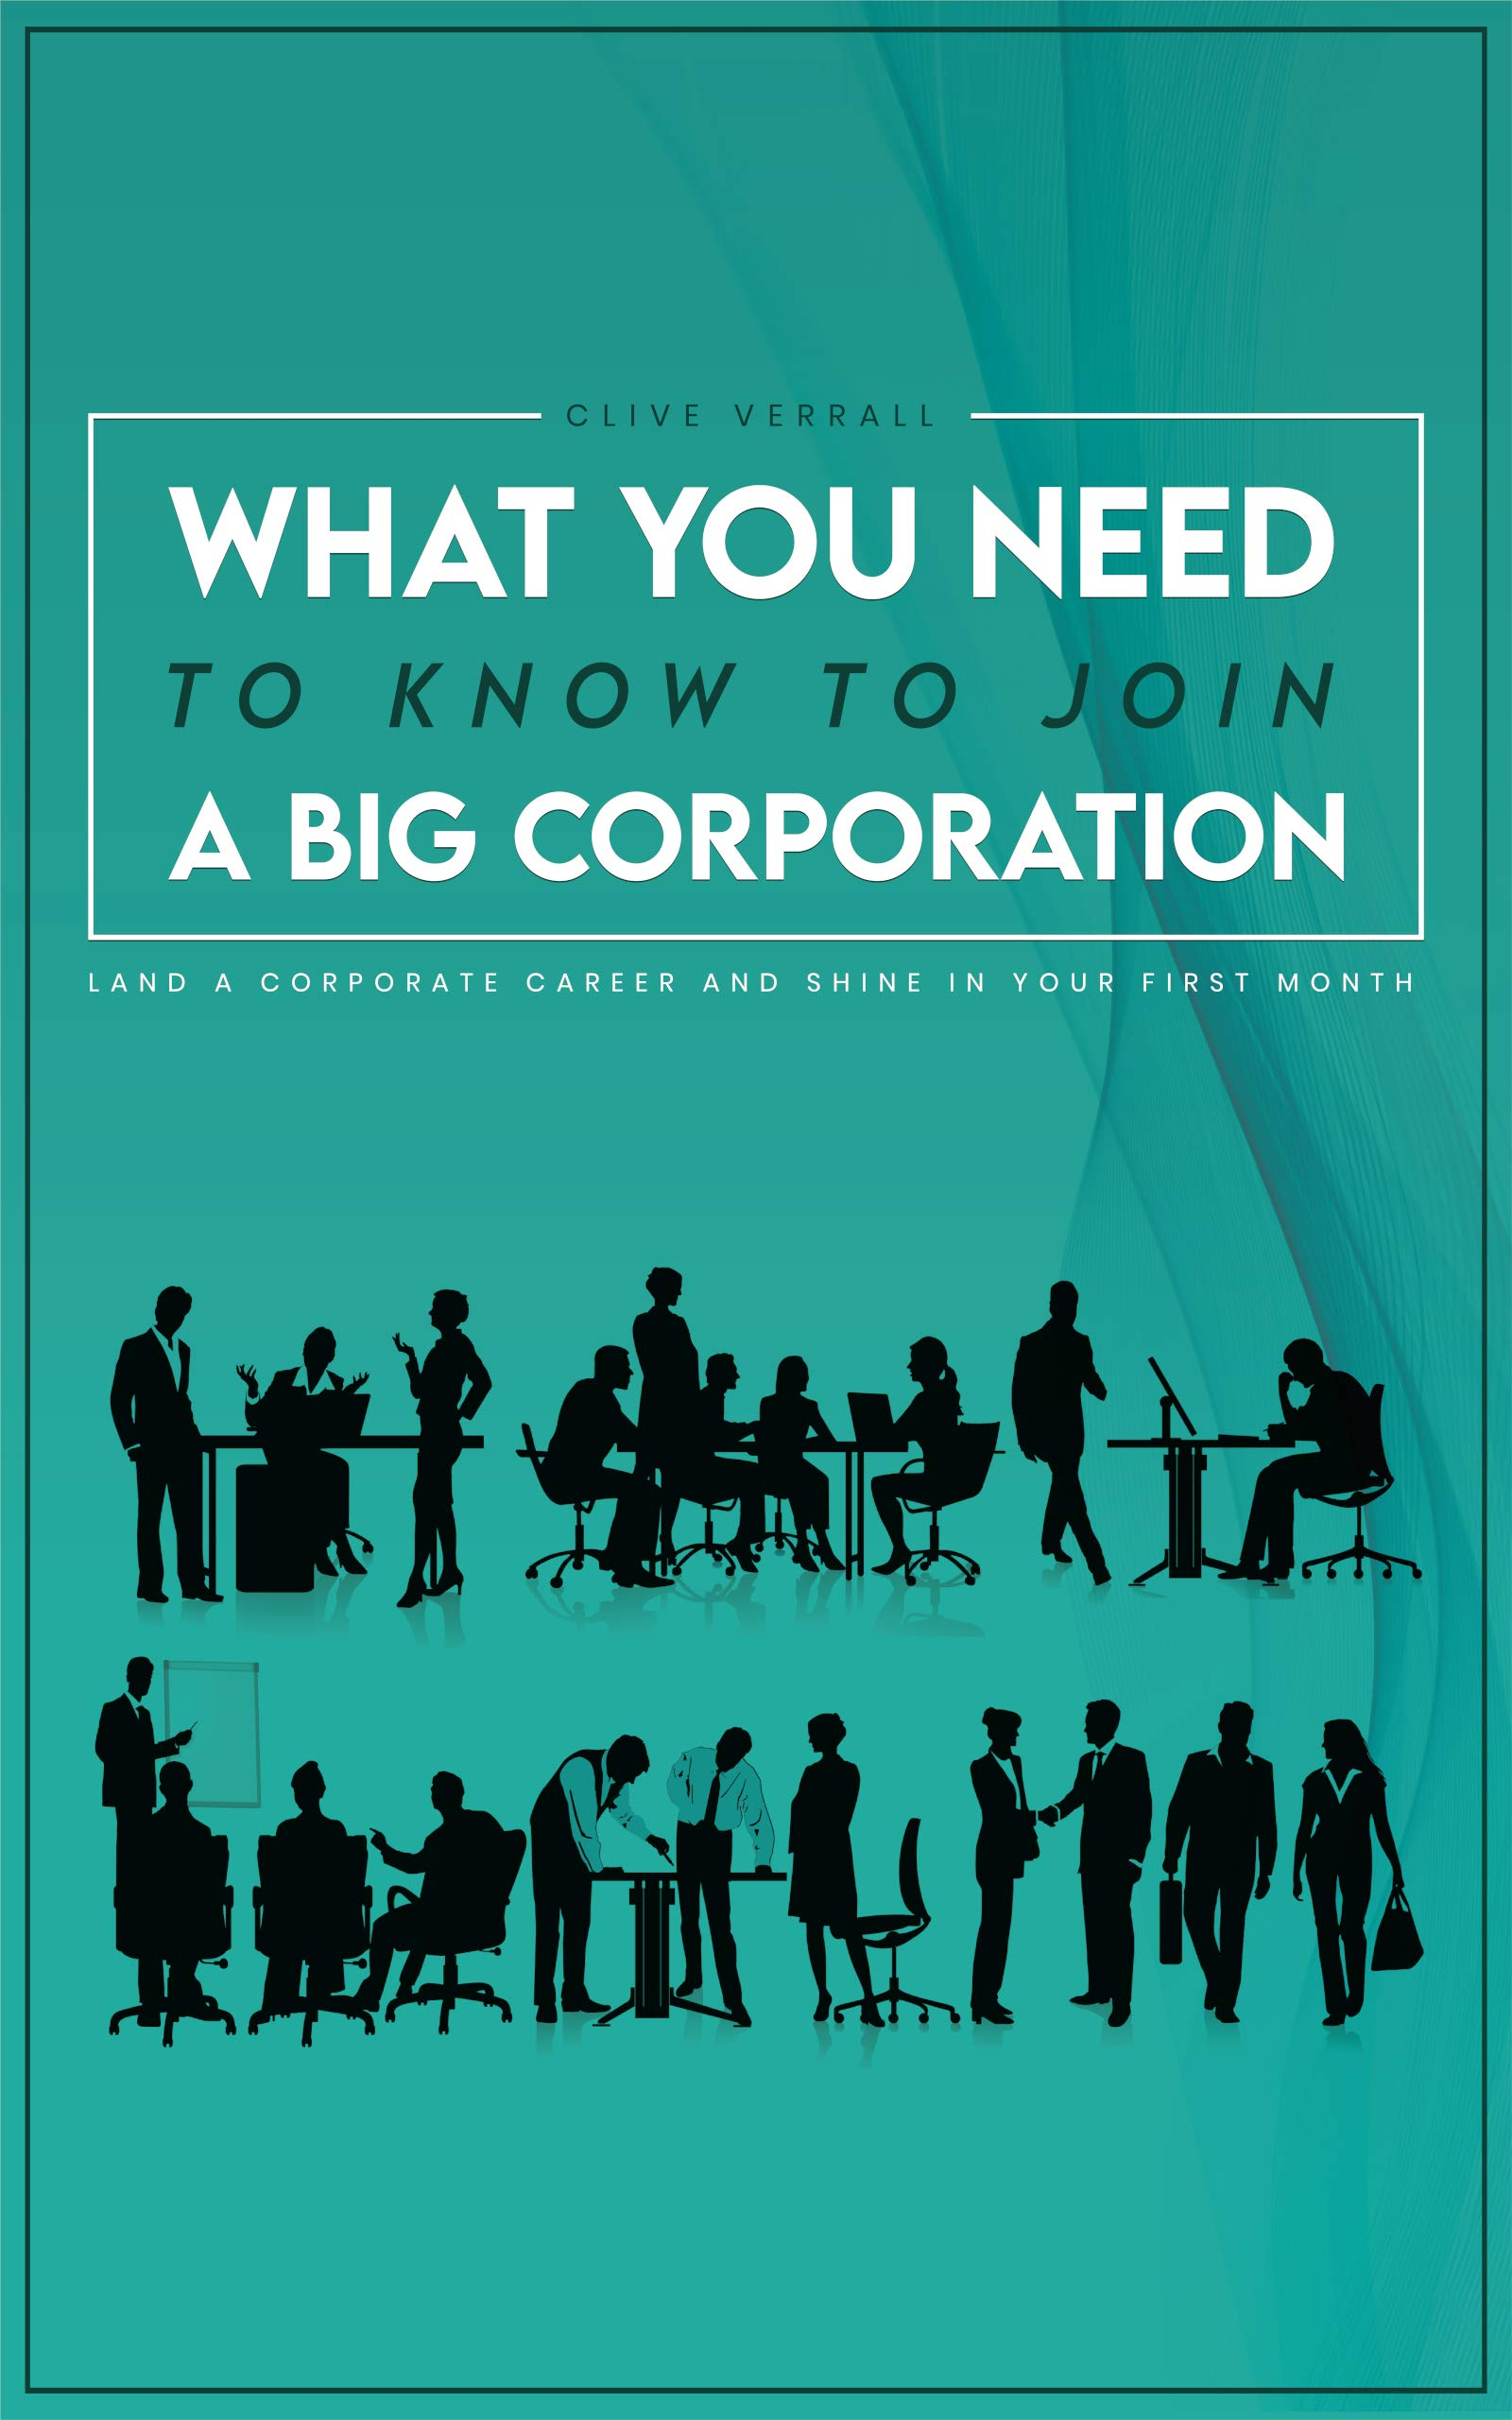 What you need to know to join a big corporation: Land a corporate career and shine in your first month